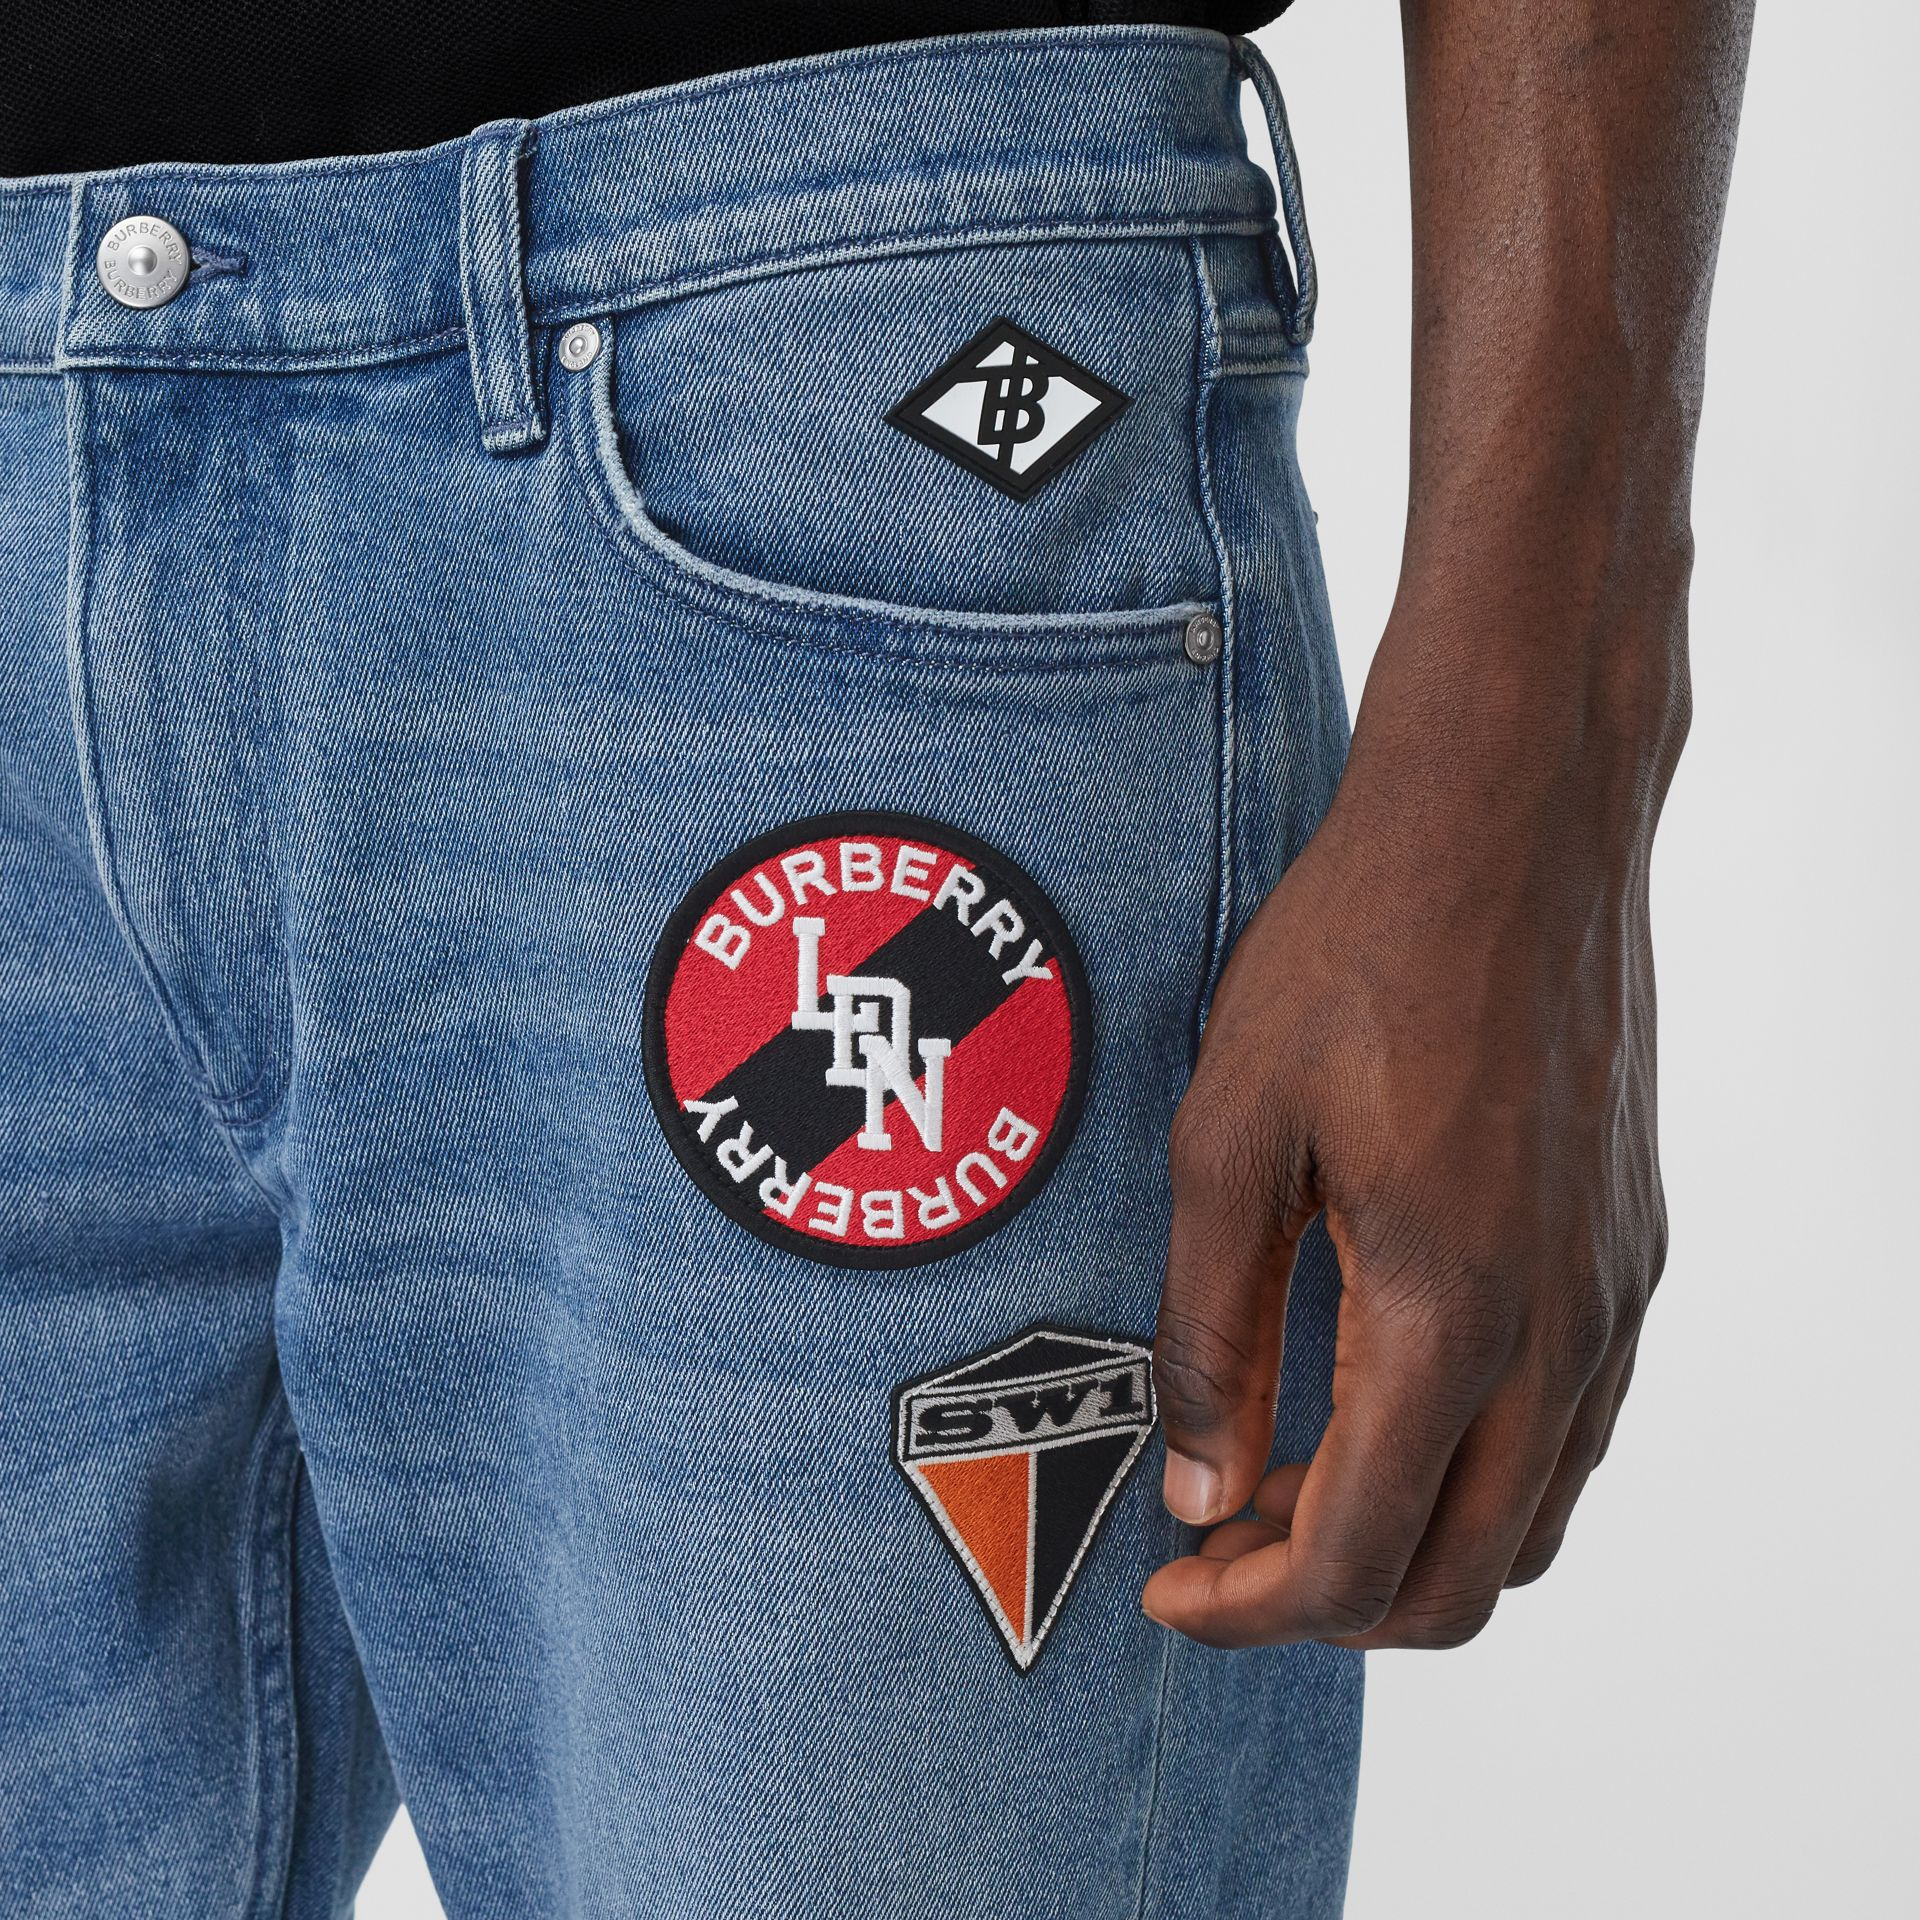 Slim Fit Logo Graphic Washed Jeans in Light Indigo Blue - Men | Burberry - gallery image 1